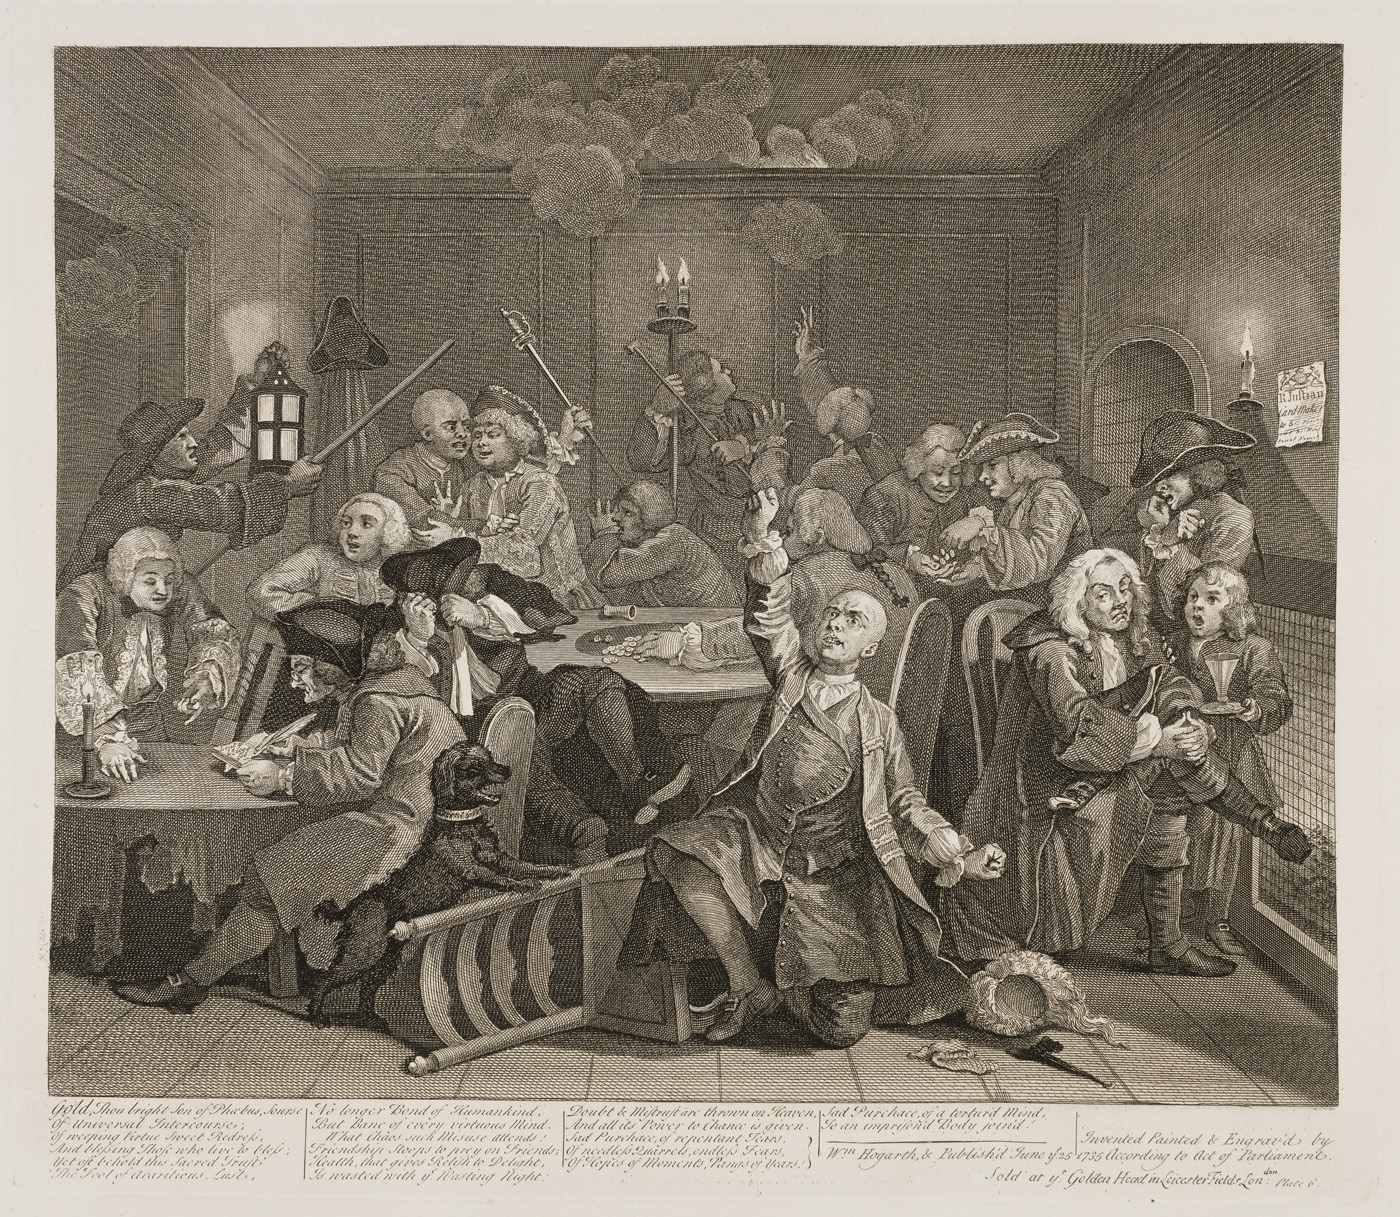 William Hogarth - The Rake's Progress plate 6